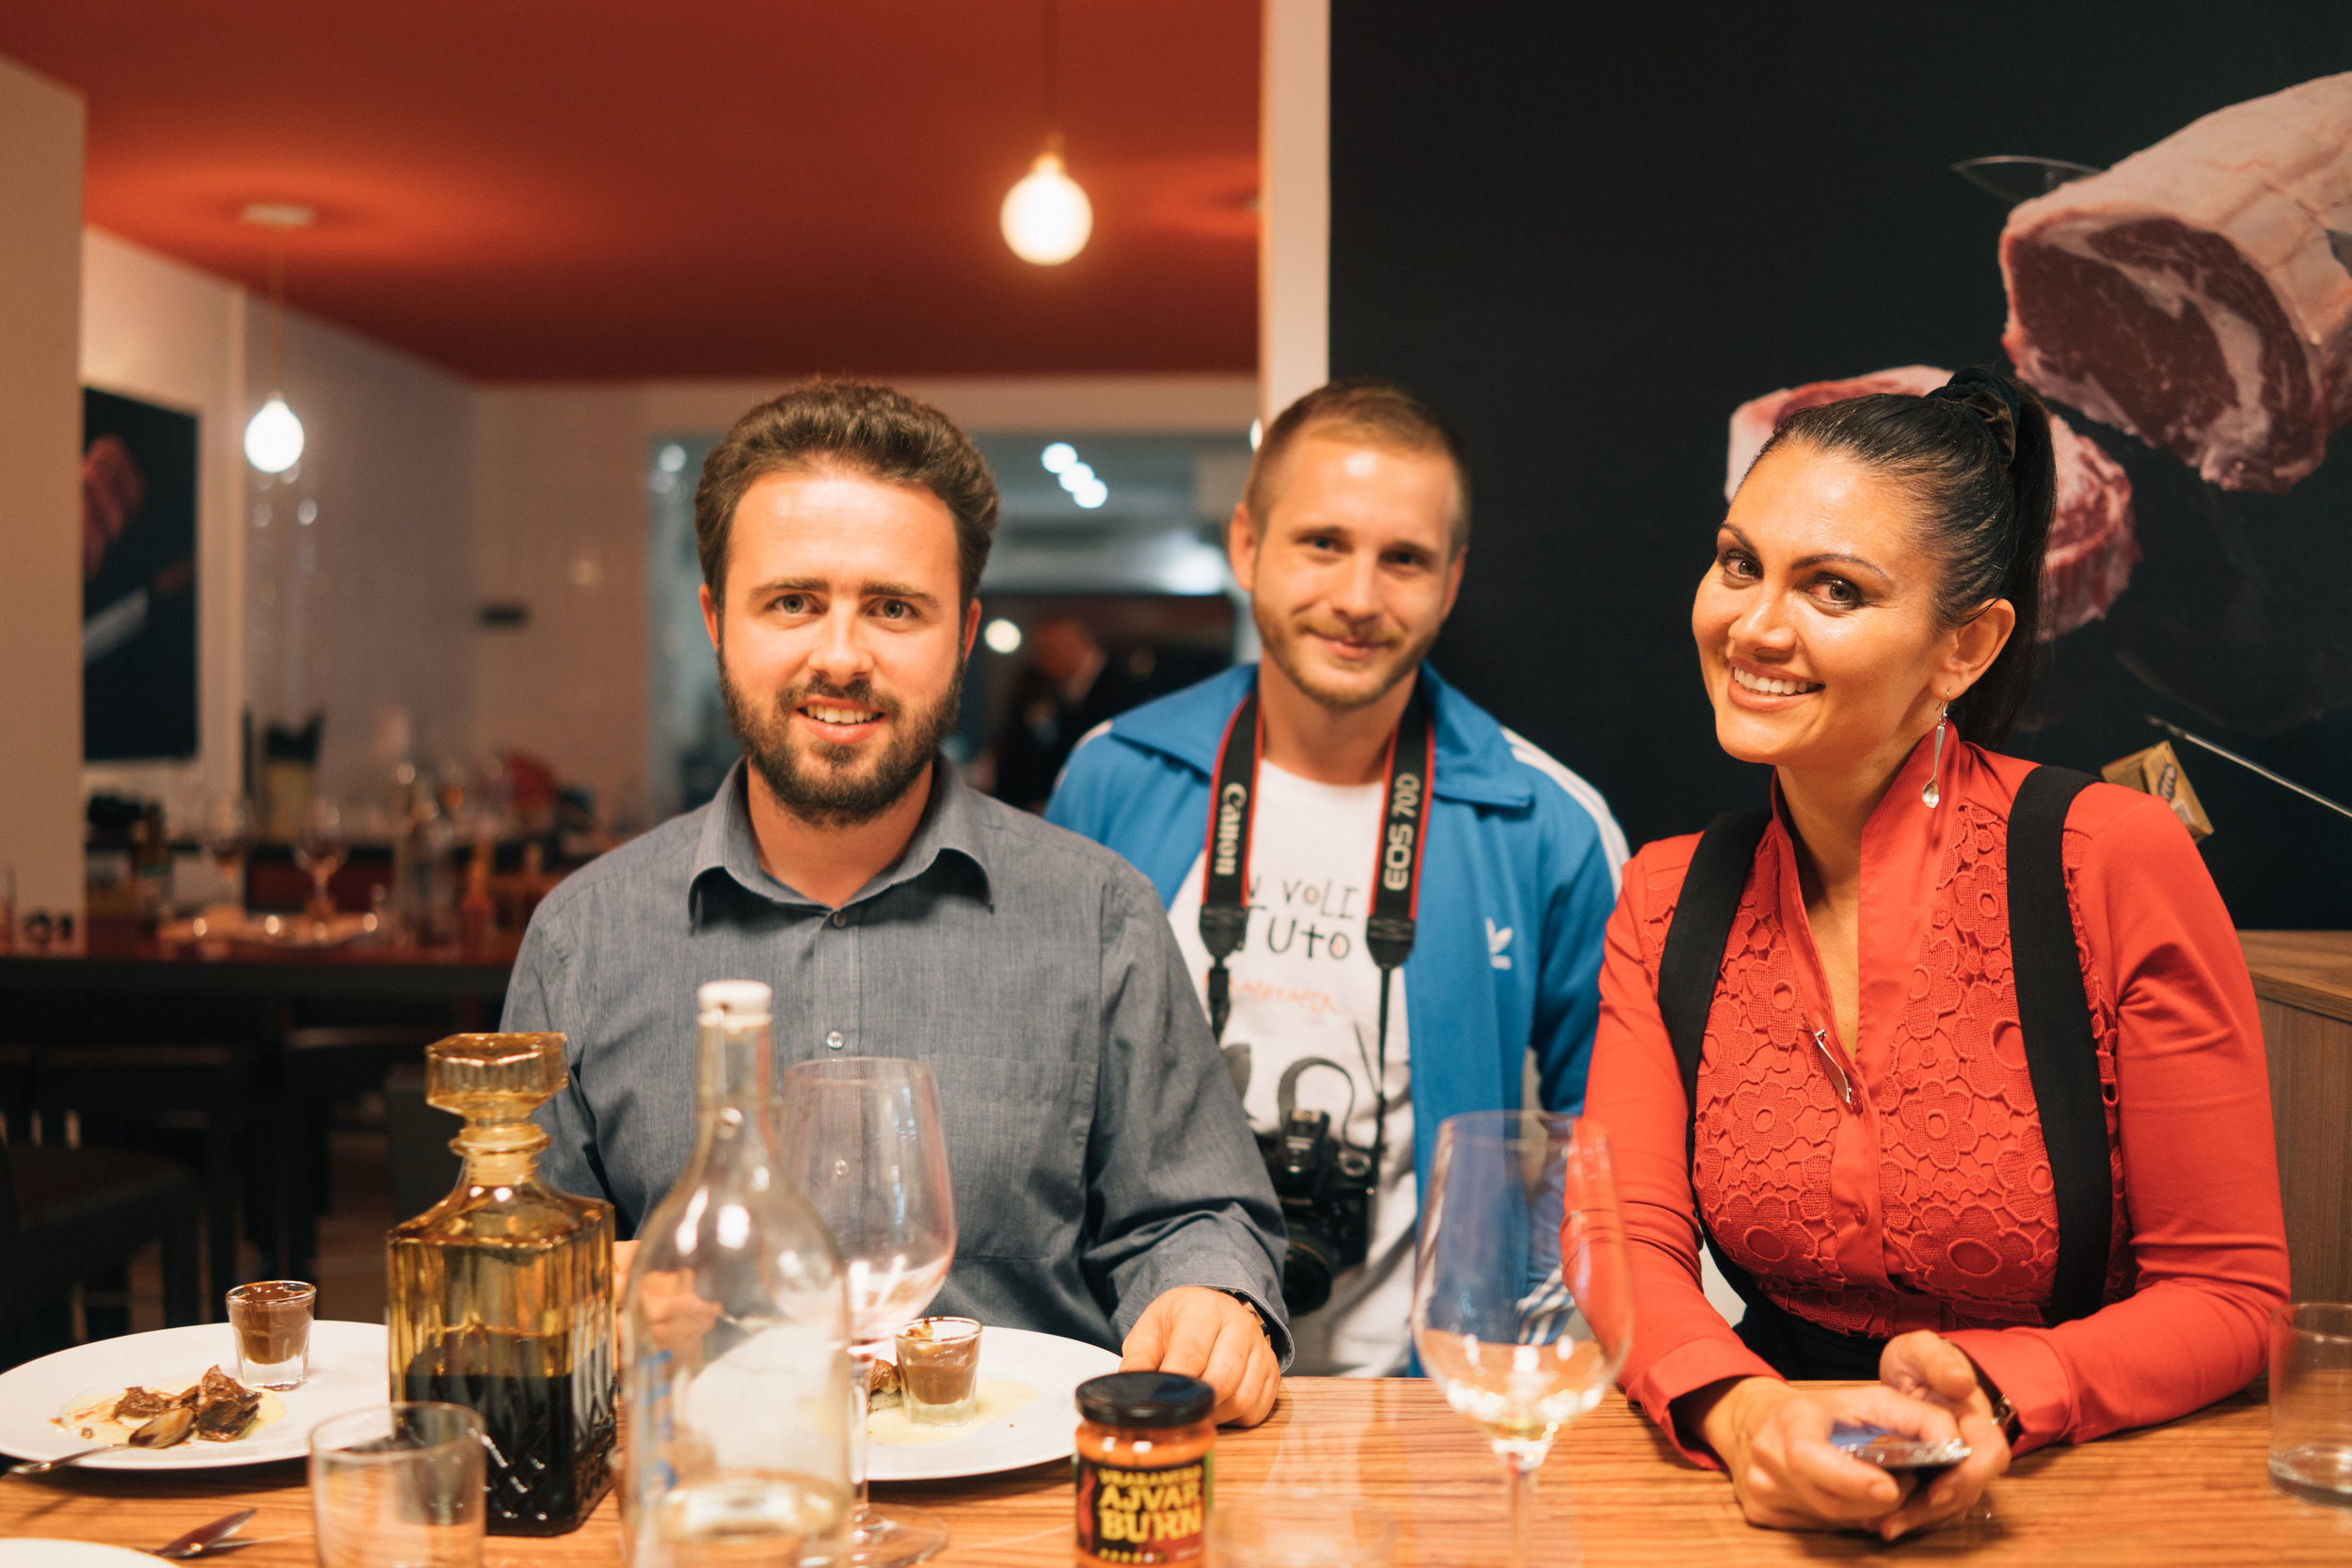 With friends at Beef Shop in Zagreb